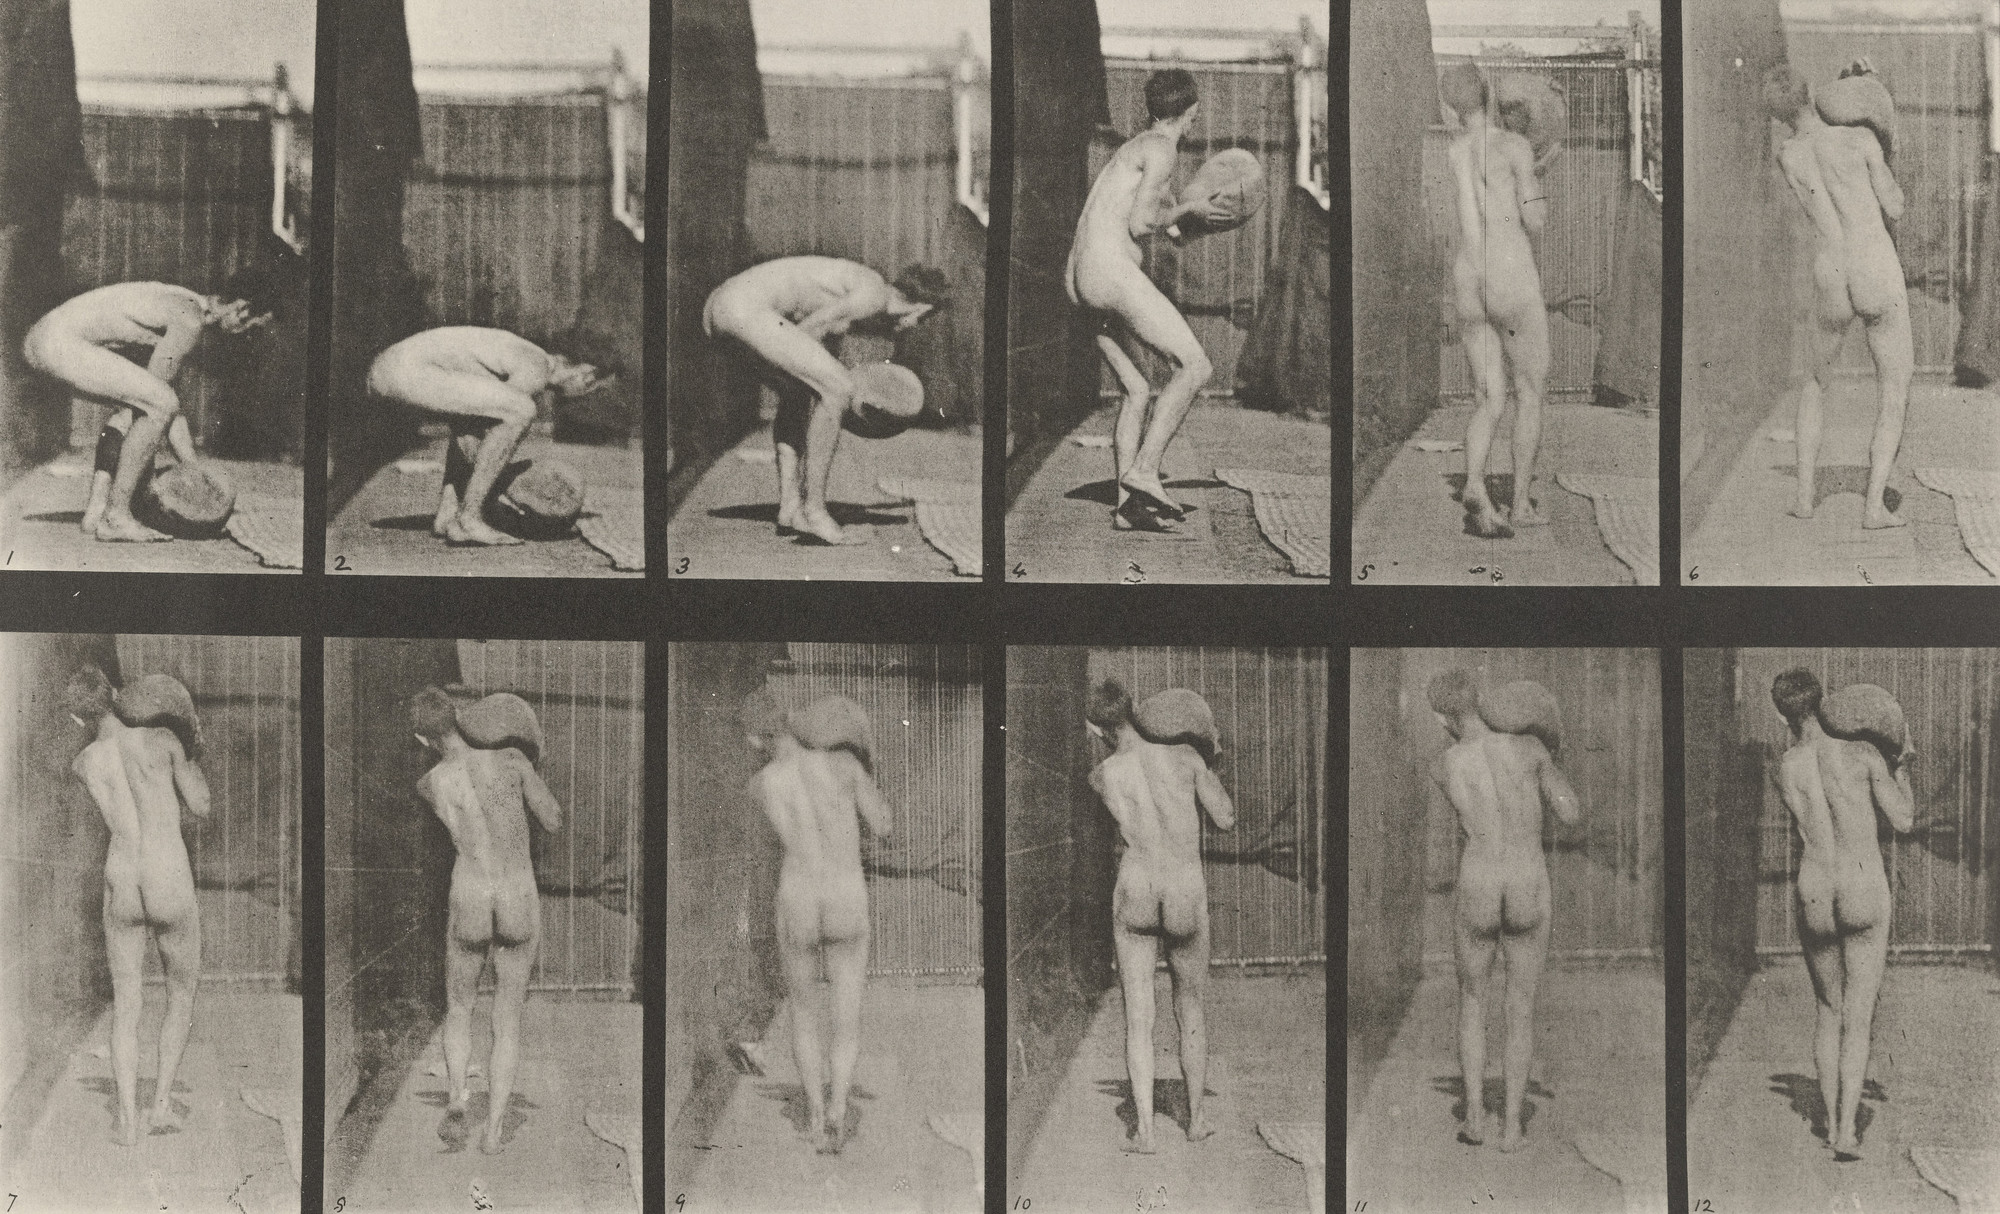 Eadweard J. Muybridge. Man Lifting 75-lb. Stone on Shoulder: Plate 397 from Animal Locomotion (1887). 1884-86